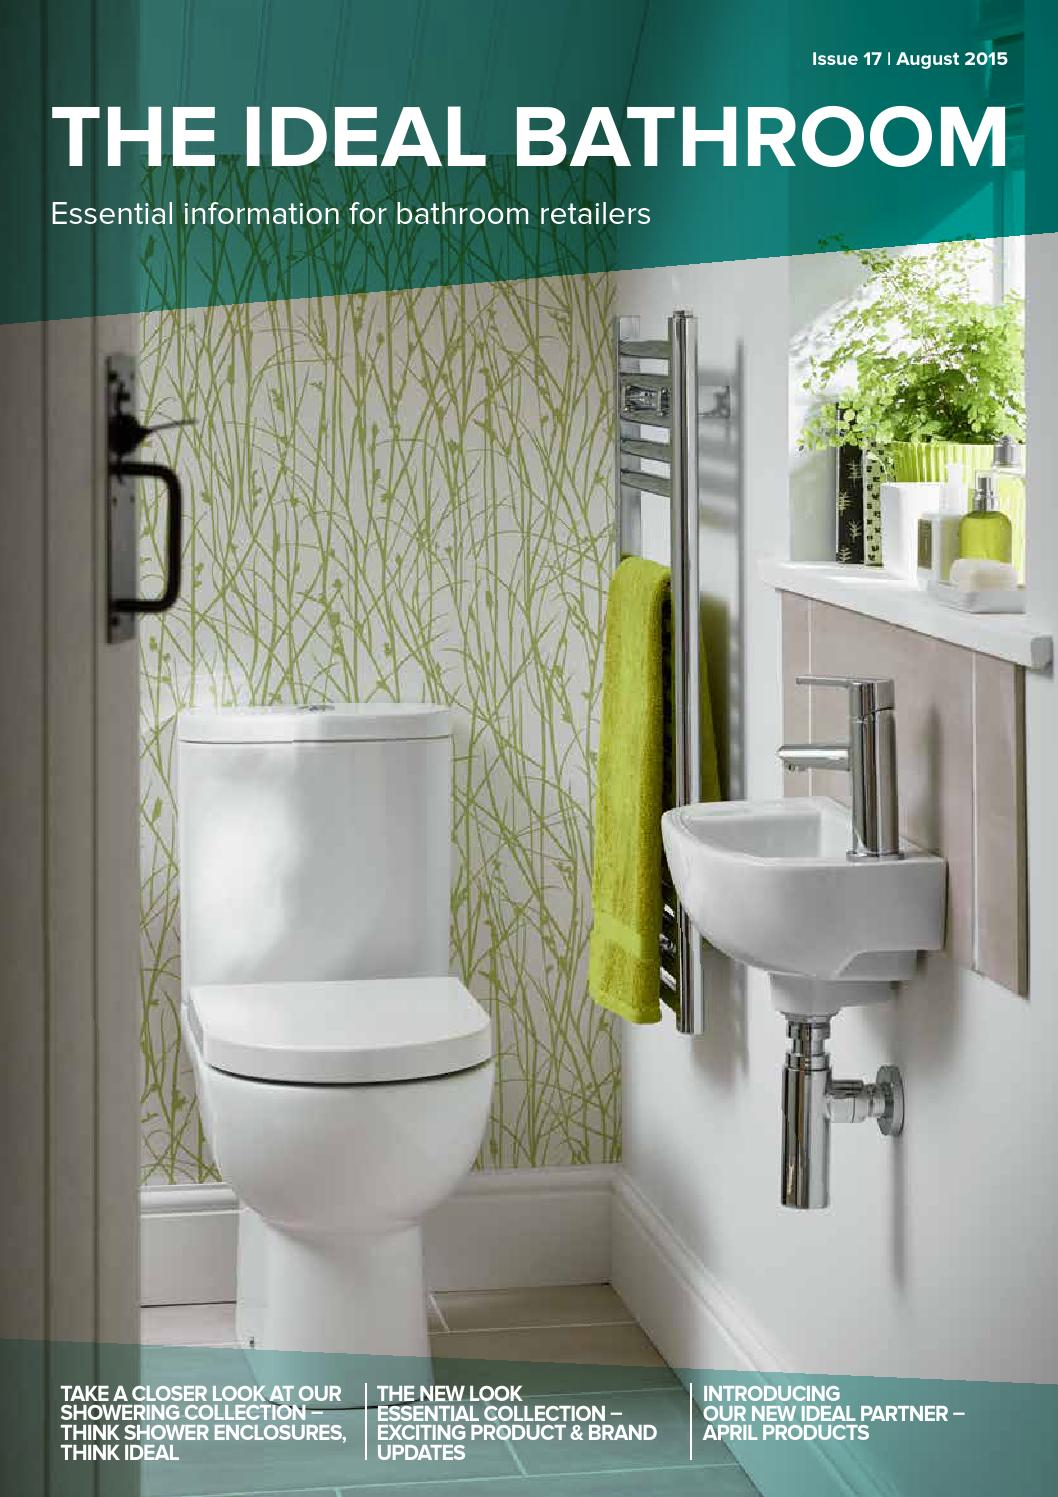 The Ideal Bathroom Magazine 17 by Ideal Bathrooms - issuu on bathroom symbols, bathroom concepts, bathroom cabinets, bathroom dimensions code, bathroom hotel, bathroom accessories product, bathroom standards, bathroom dresser, bathroom illusions, bathroom interior colors,